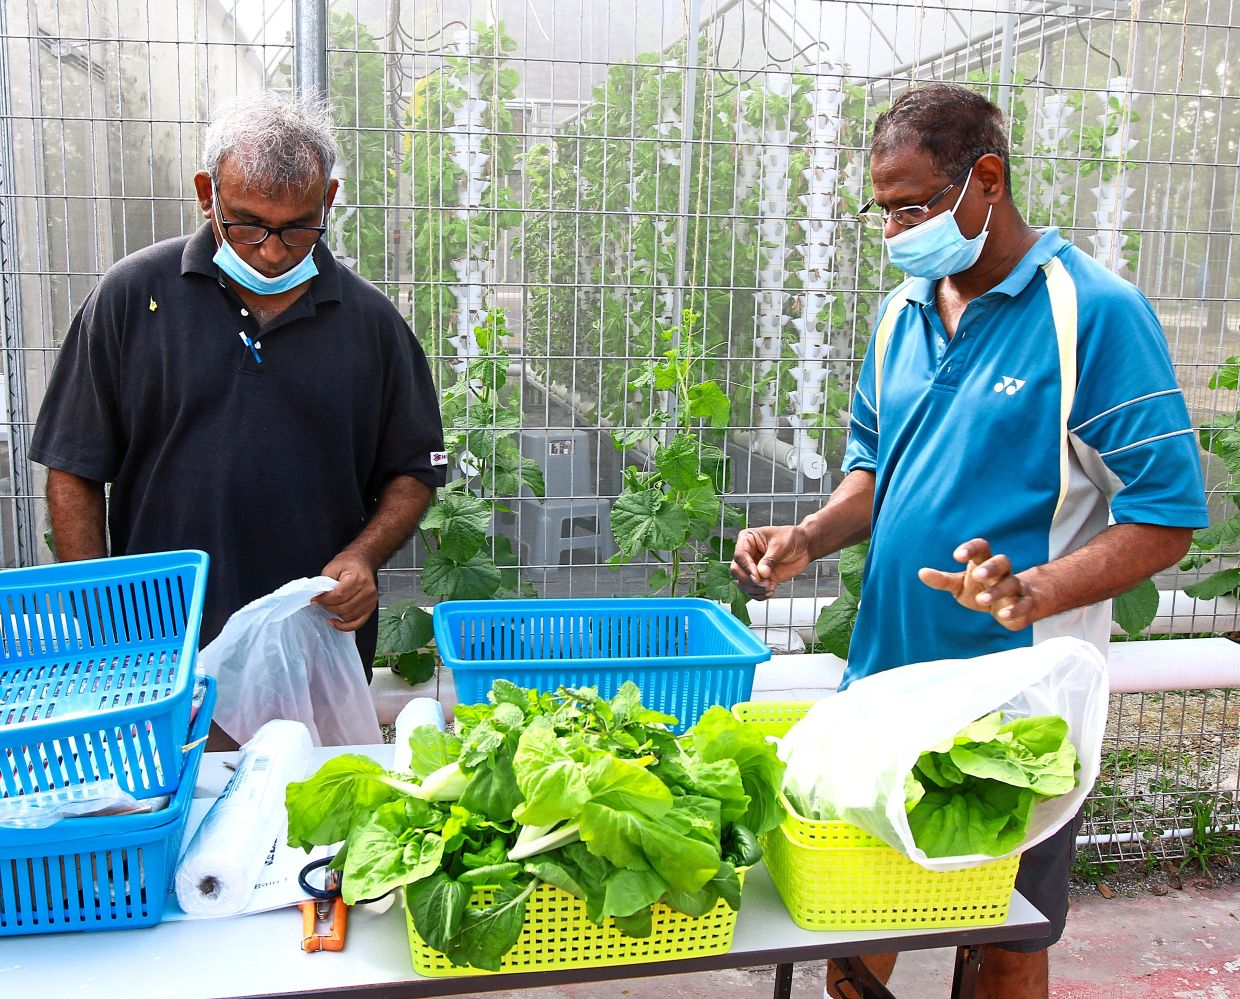 Chandran (left) and Mahendran  are retired  professional landscapers who are now caretakers of Kebun By Amboi.